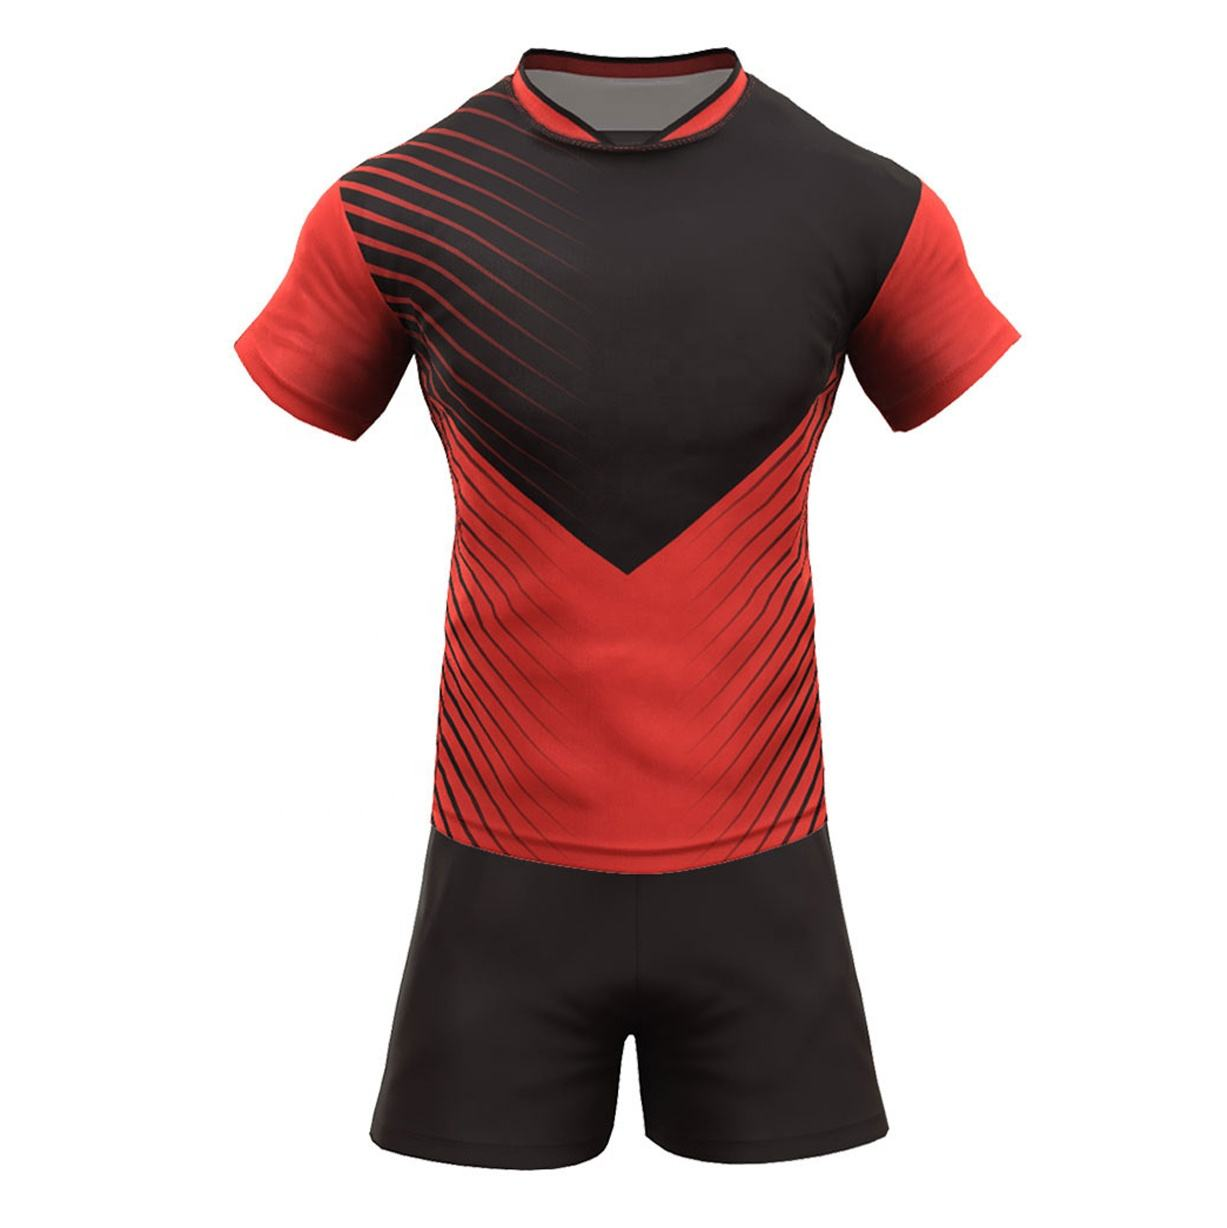 Top Selling Adult Size Rugby Uniform Made In 100 % Polyester Rugby Uniform